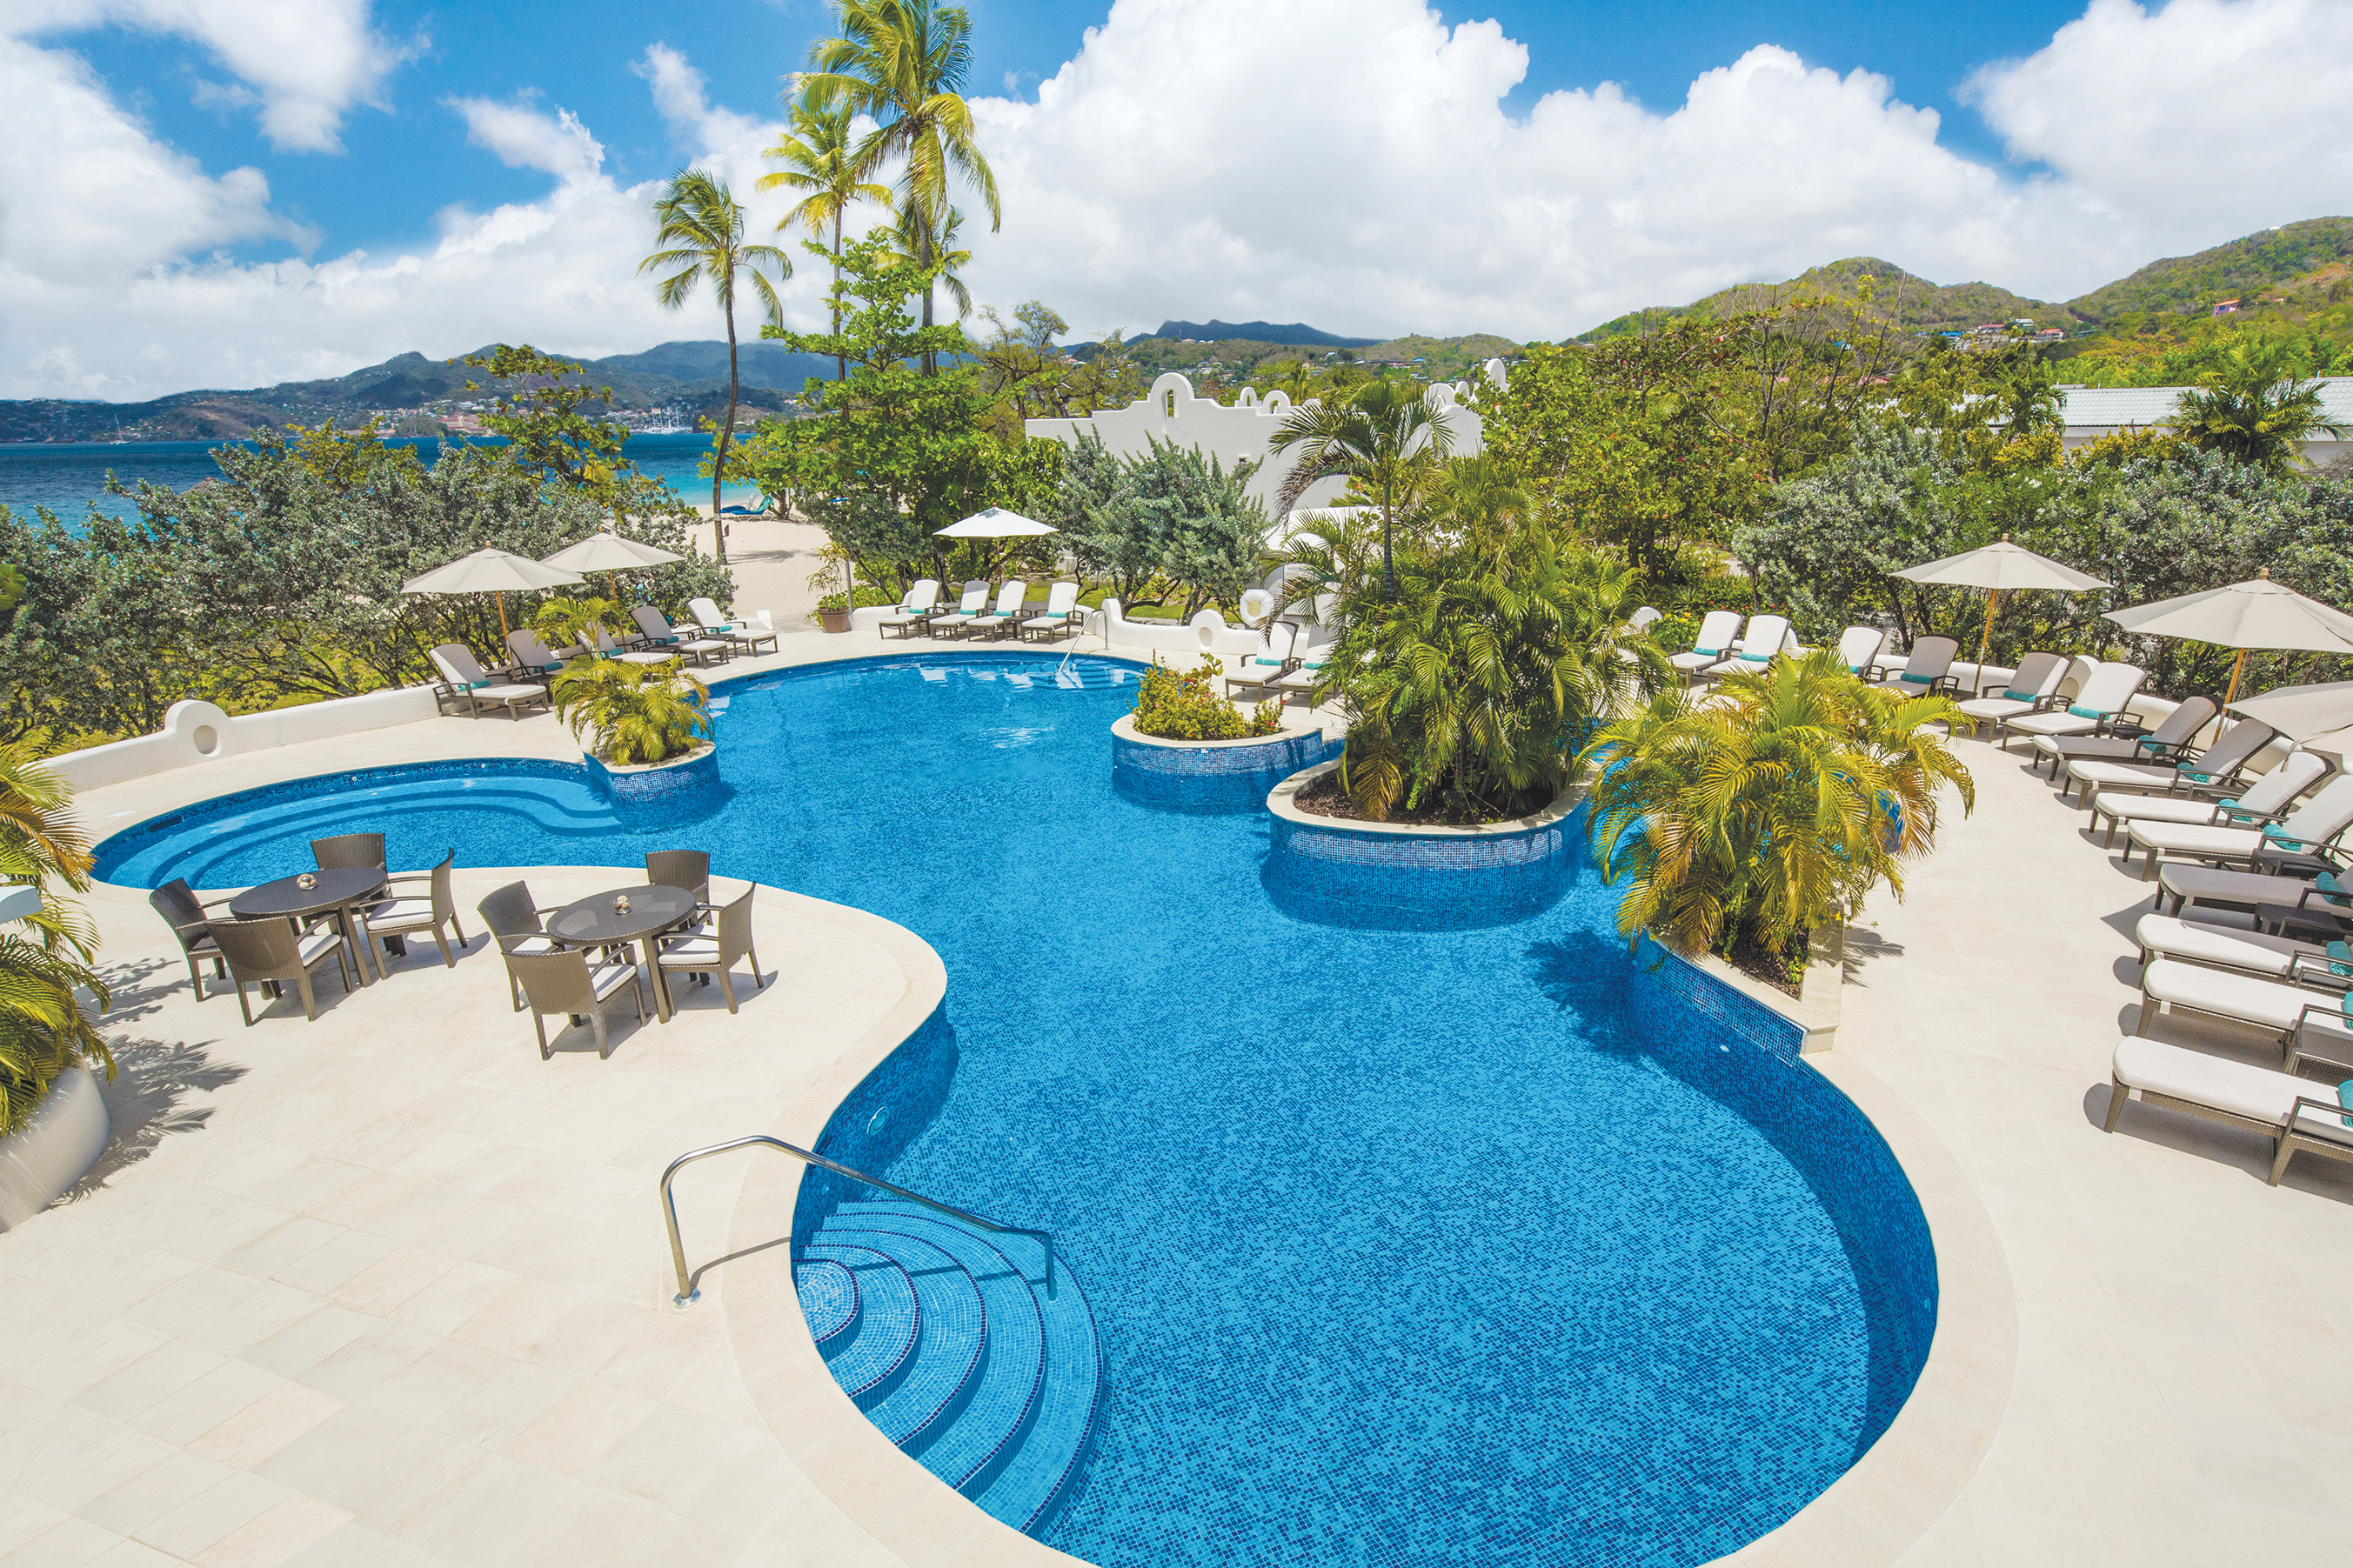 Travel Agency All-Inclusive Resort Spice Island Beach Resort 02